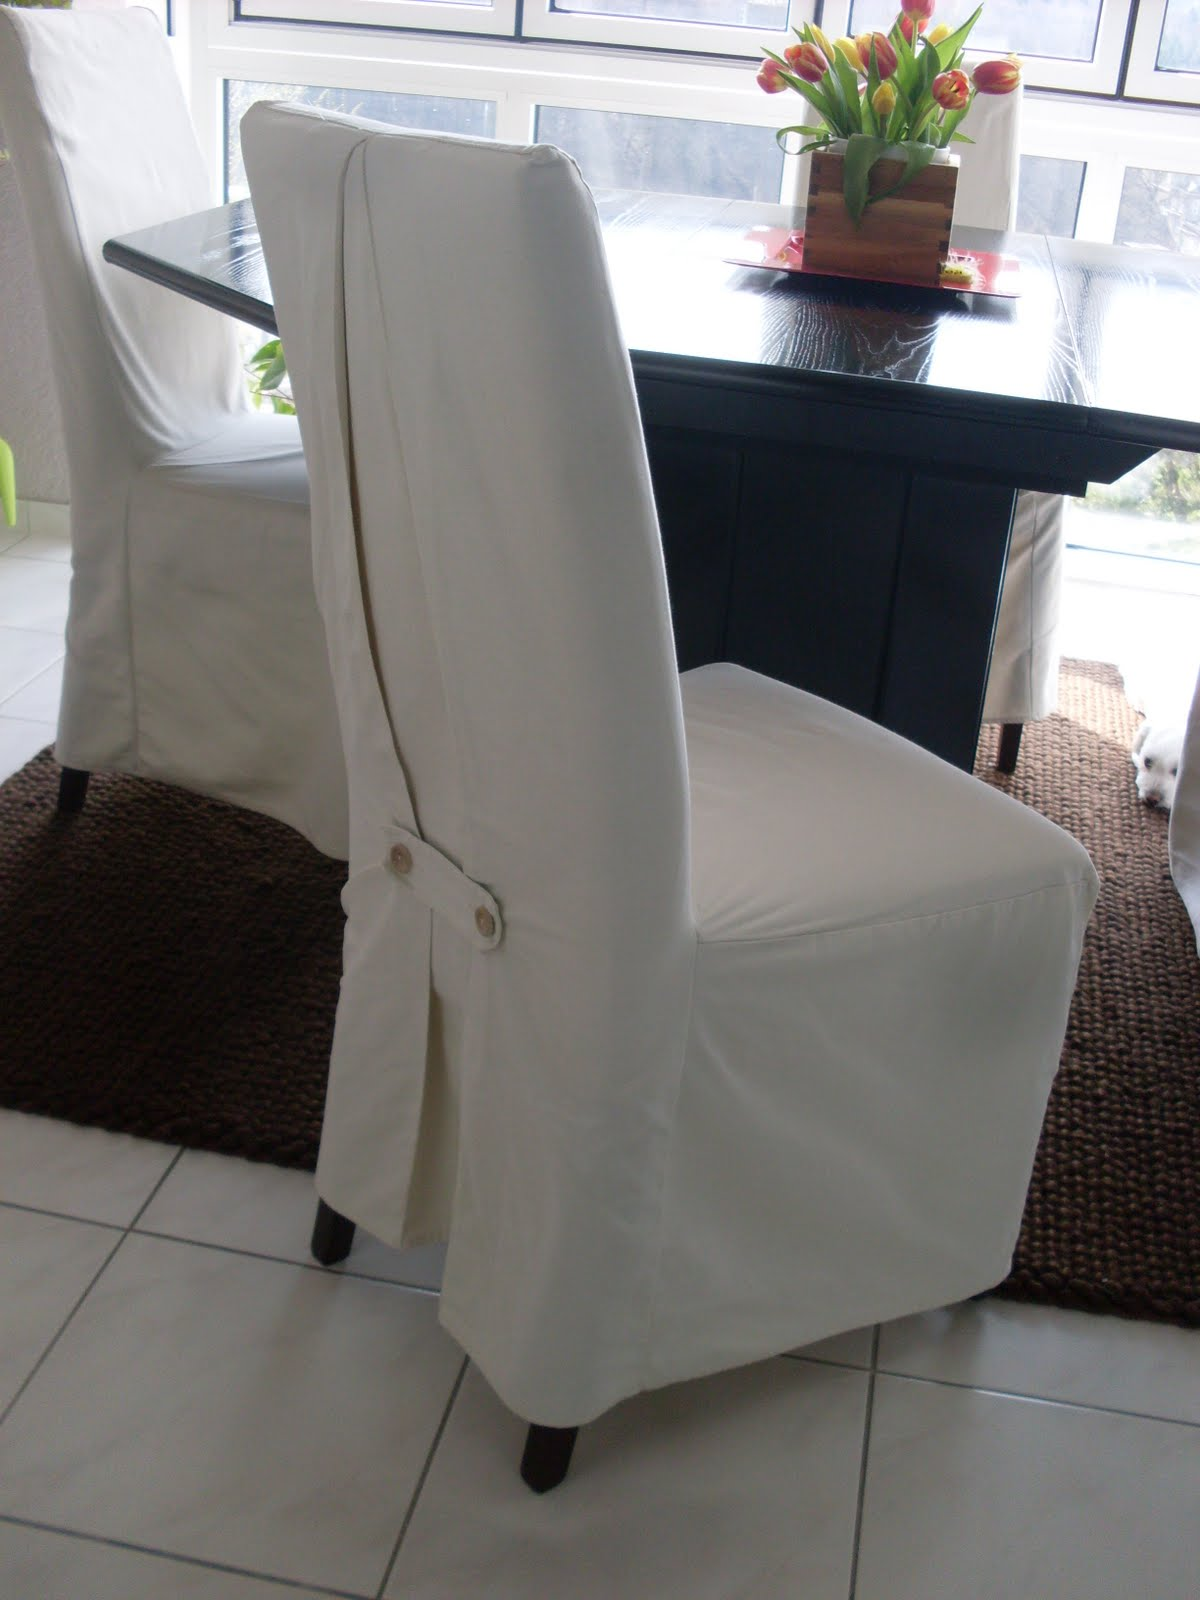 Outstanding Dining Room Chair Covers for Sale 1200 x 1600 · 122 kB · jpeg